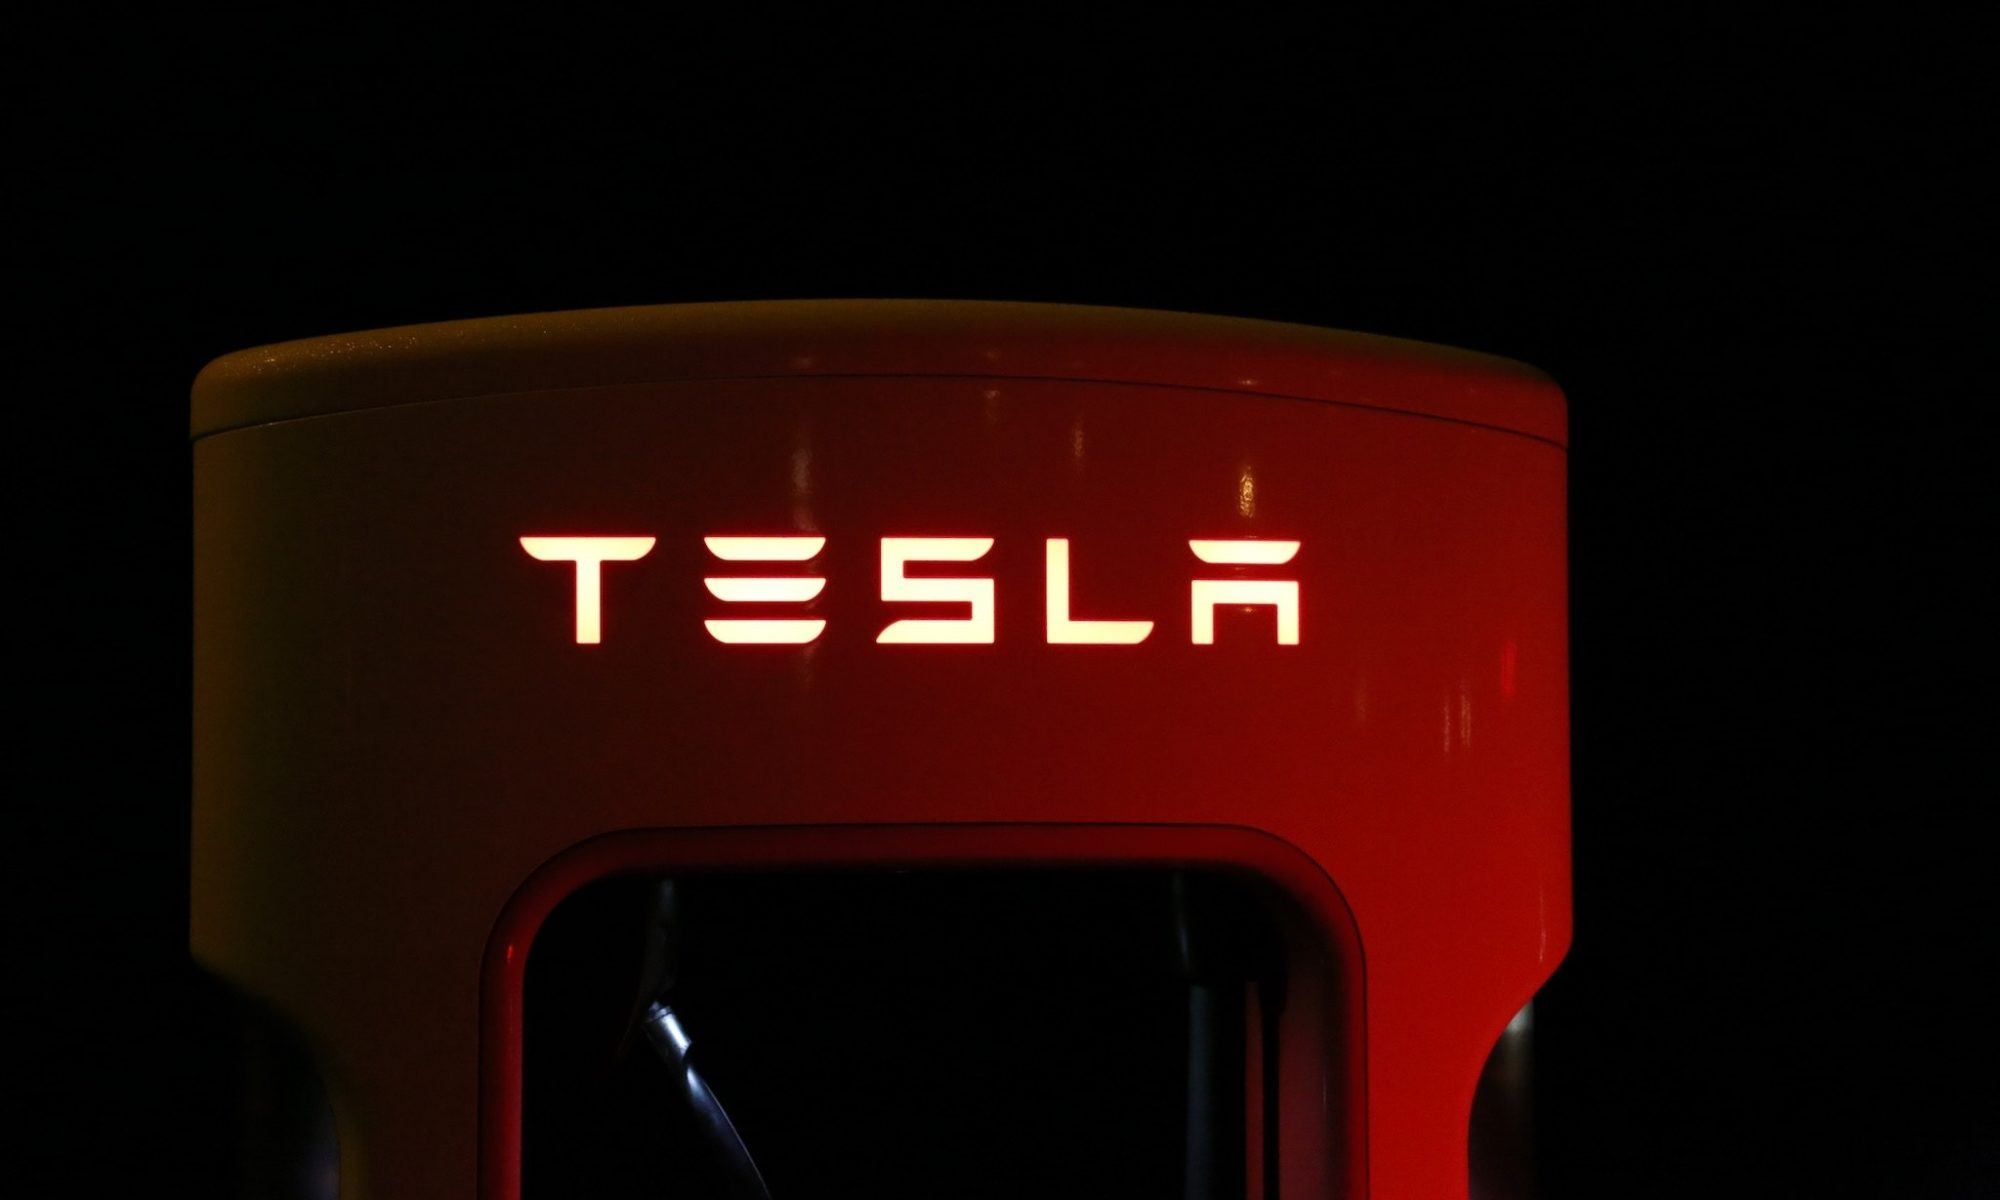 TESLA, representing cleantech efforts